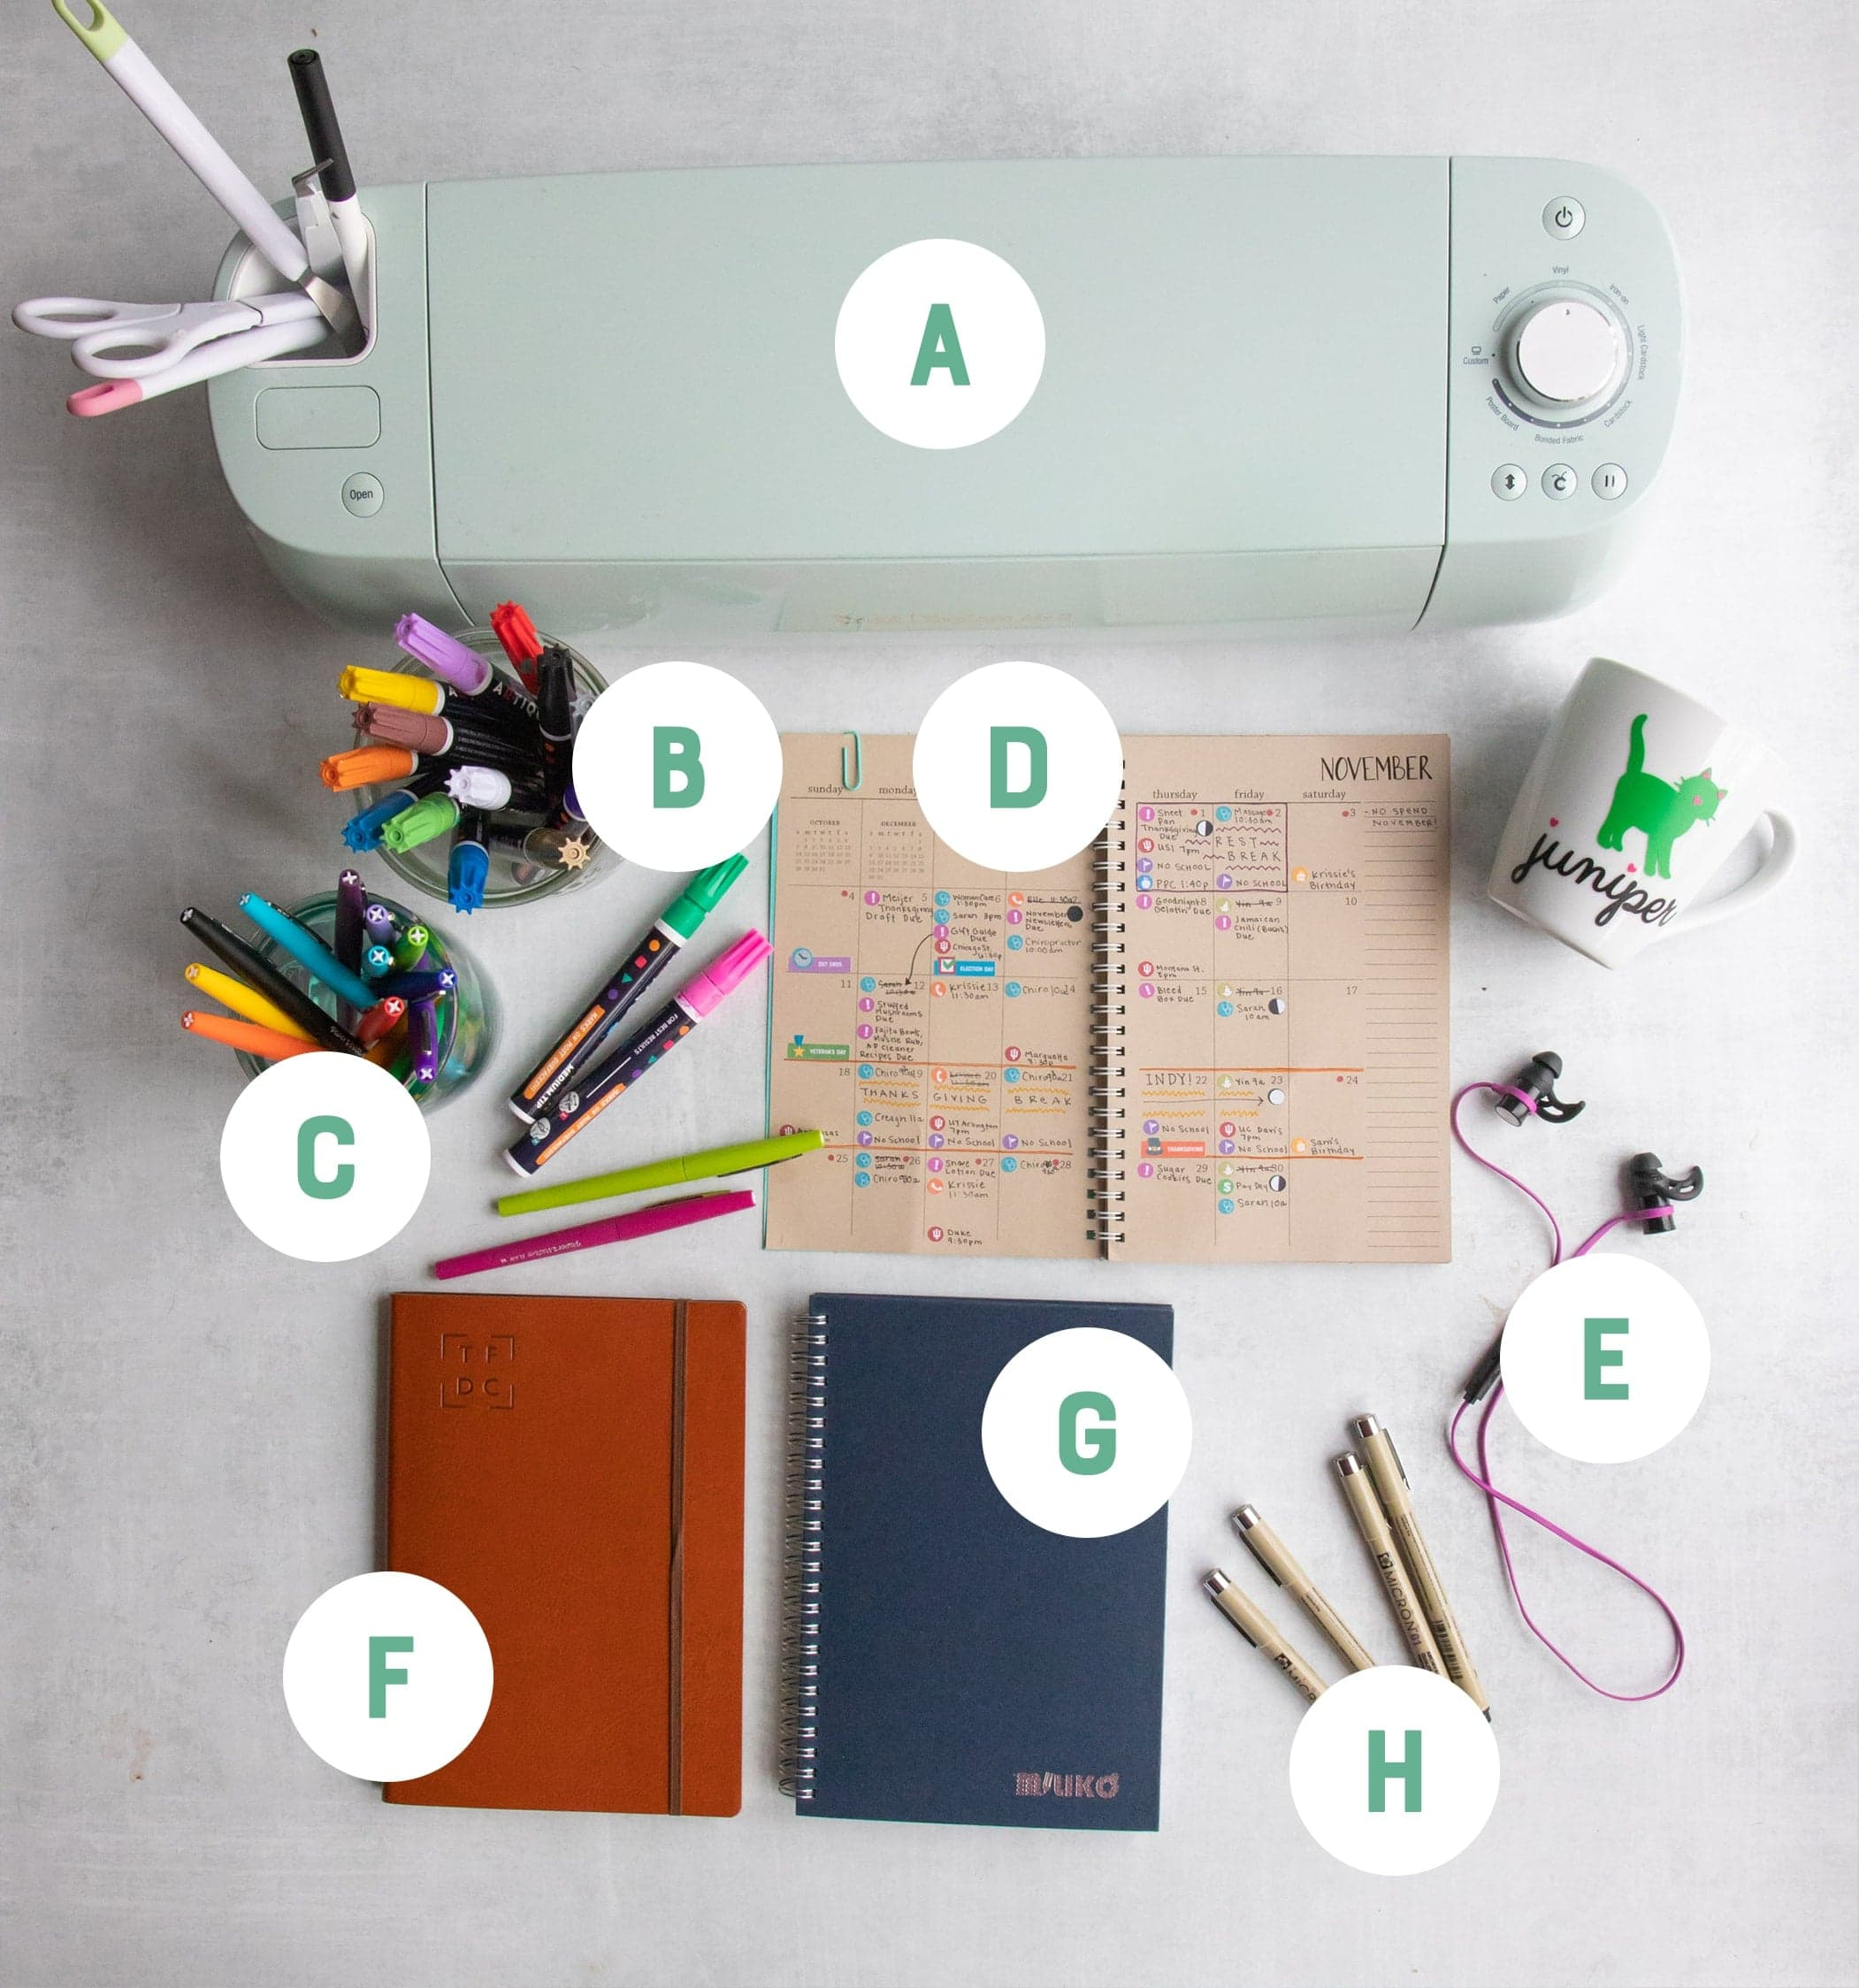 Office items arranged on a gray backdrop and labeled with letters: notebooks, a Cricut, pens in jars, headphones, and an open planner